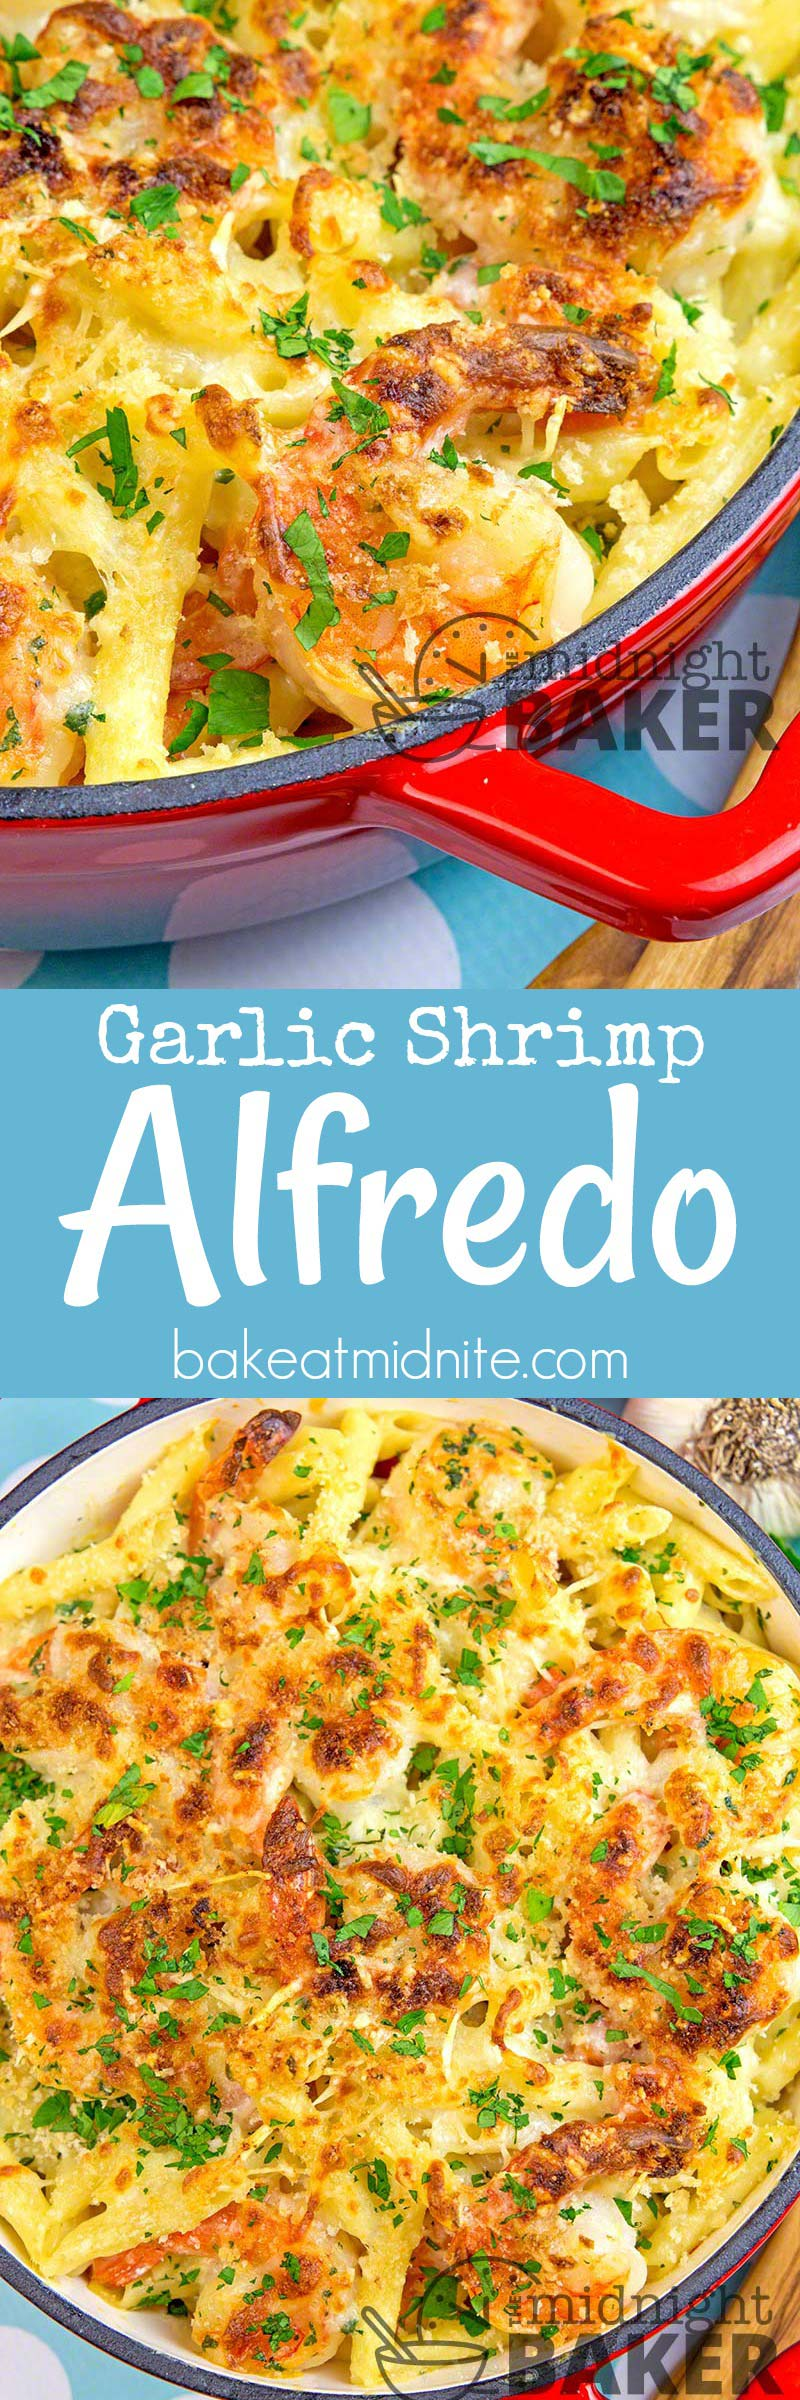 Garlicky shrimp and penne in a cheesy garlicky sauce. What could be better?